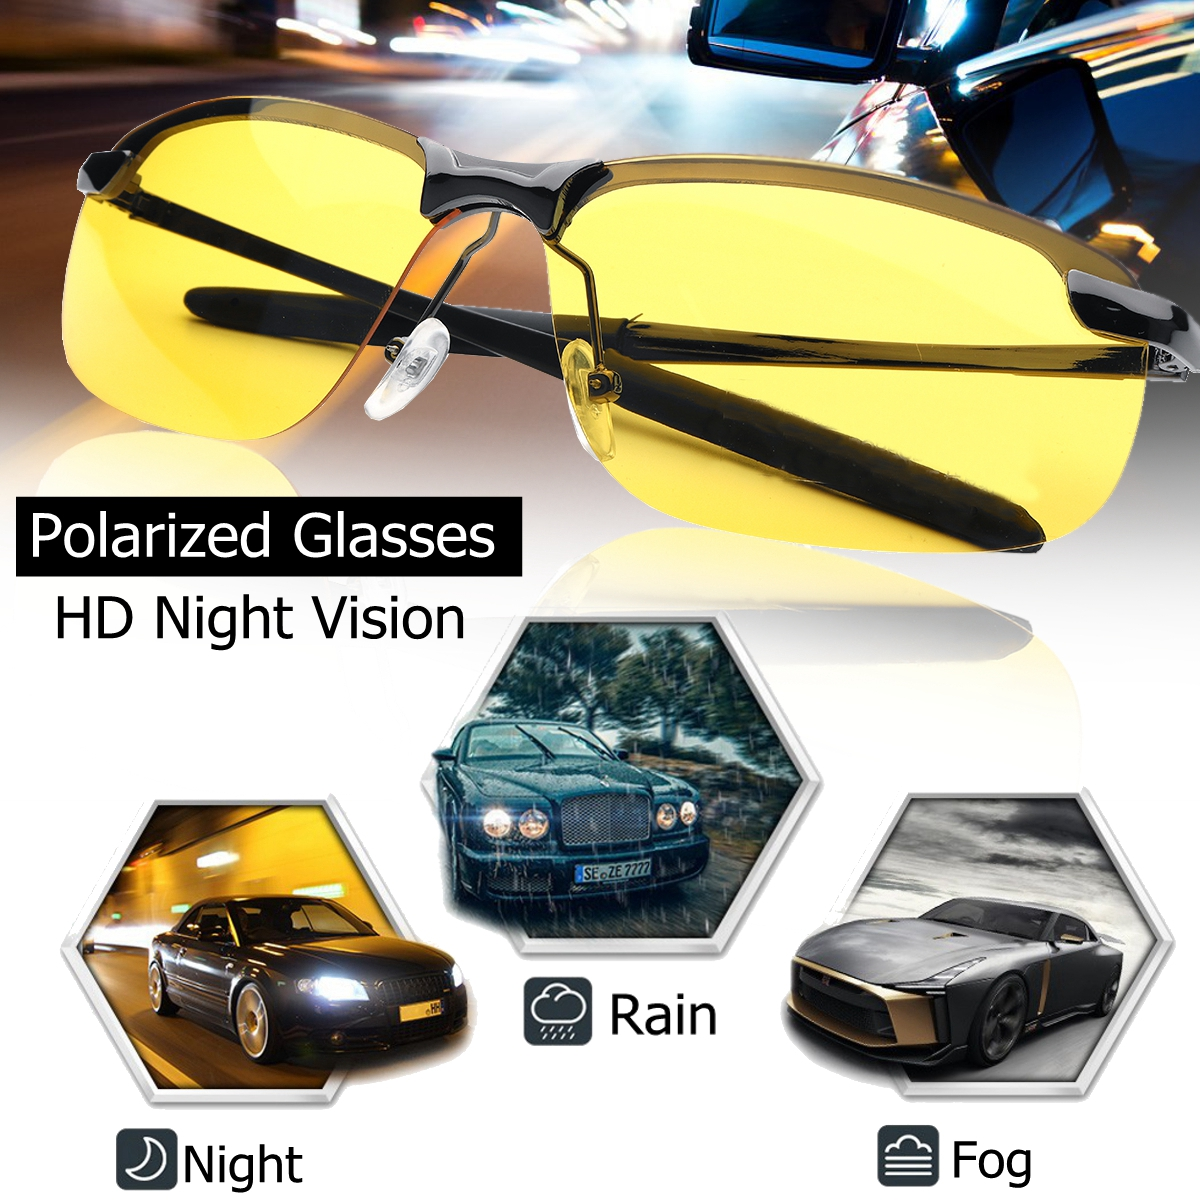 UV400 Polarized Driving Sunglasses Day Night Vision Glasses